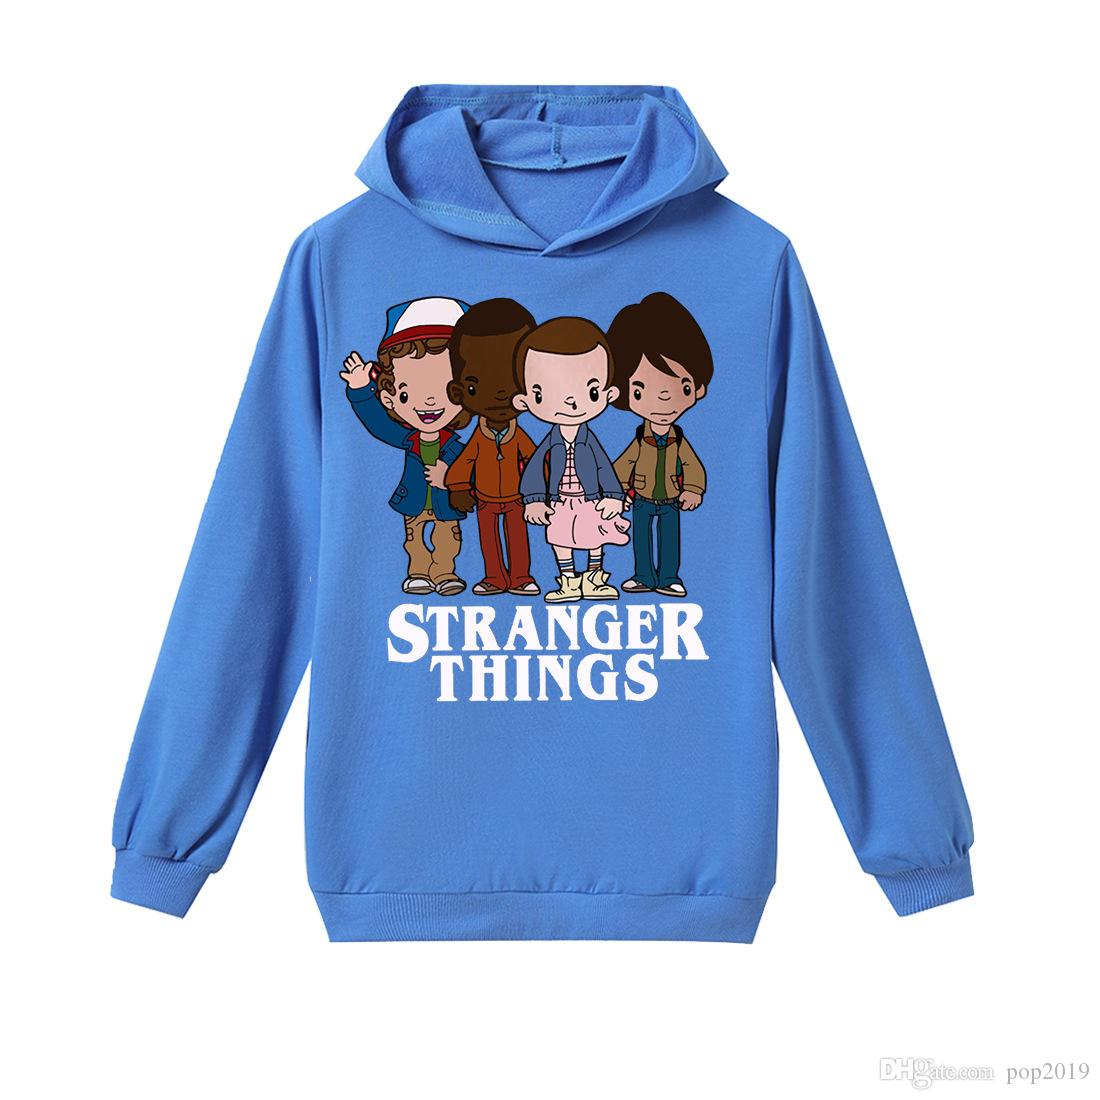 SS-tranger-Thing-s Animated Series Kids T-Shirts Long Sleeve Tees Fashion Tops for Boys//Girls